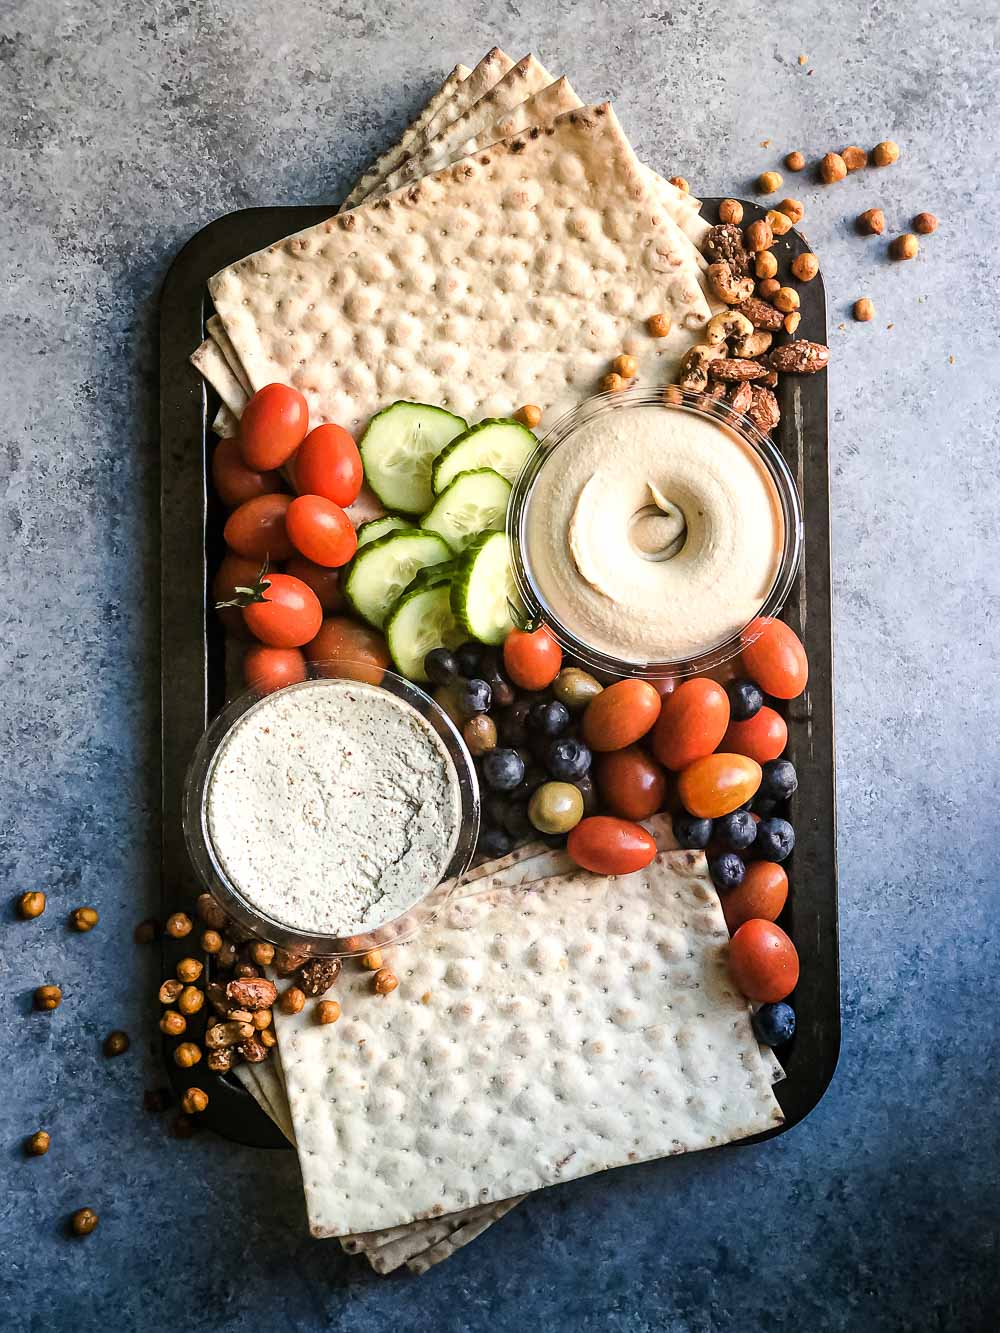 Mediterranean Mezza platter. This is the absolute healthy Mezza platter that comes with hummus, tabbouleh, roasted vegetables, lavash and so much more.